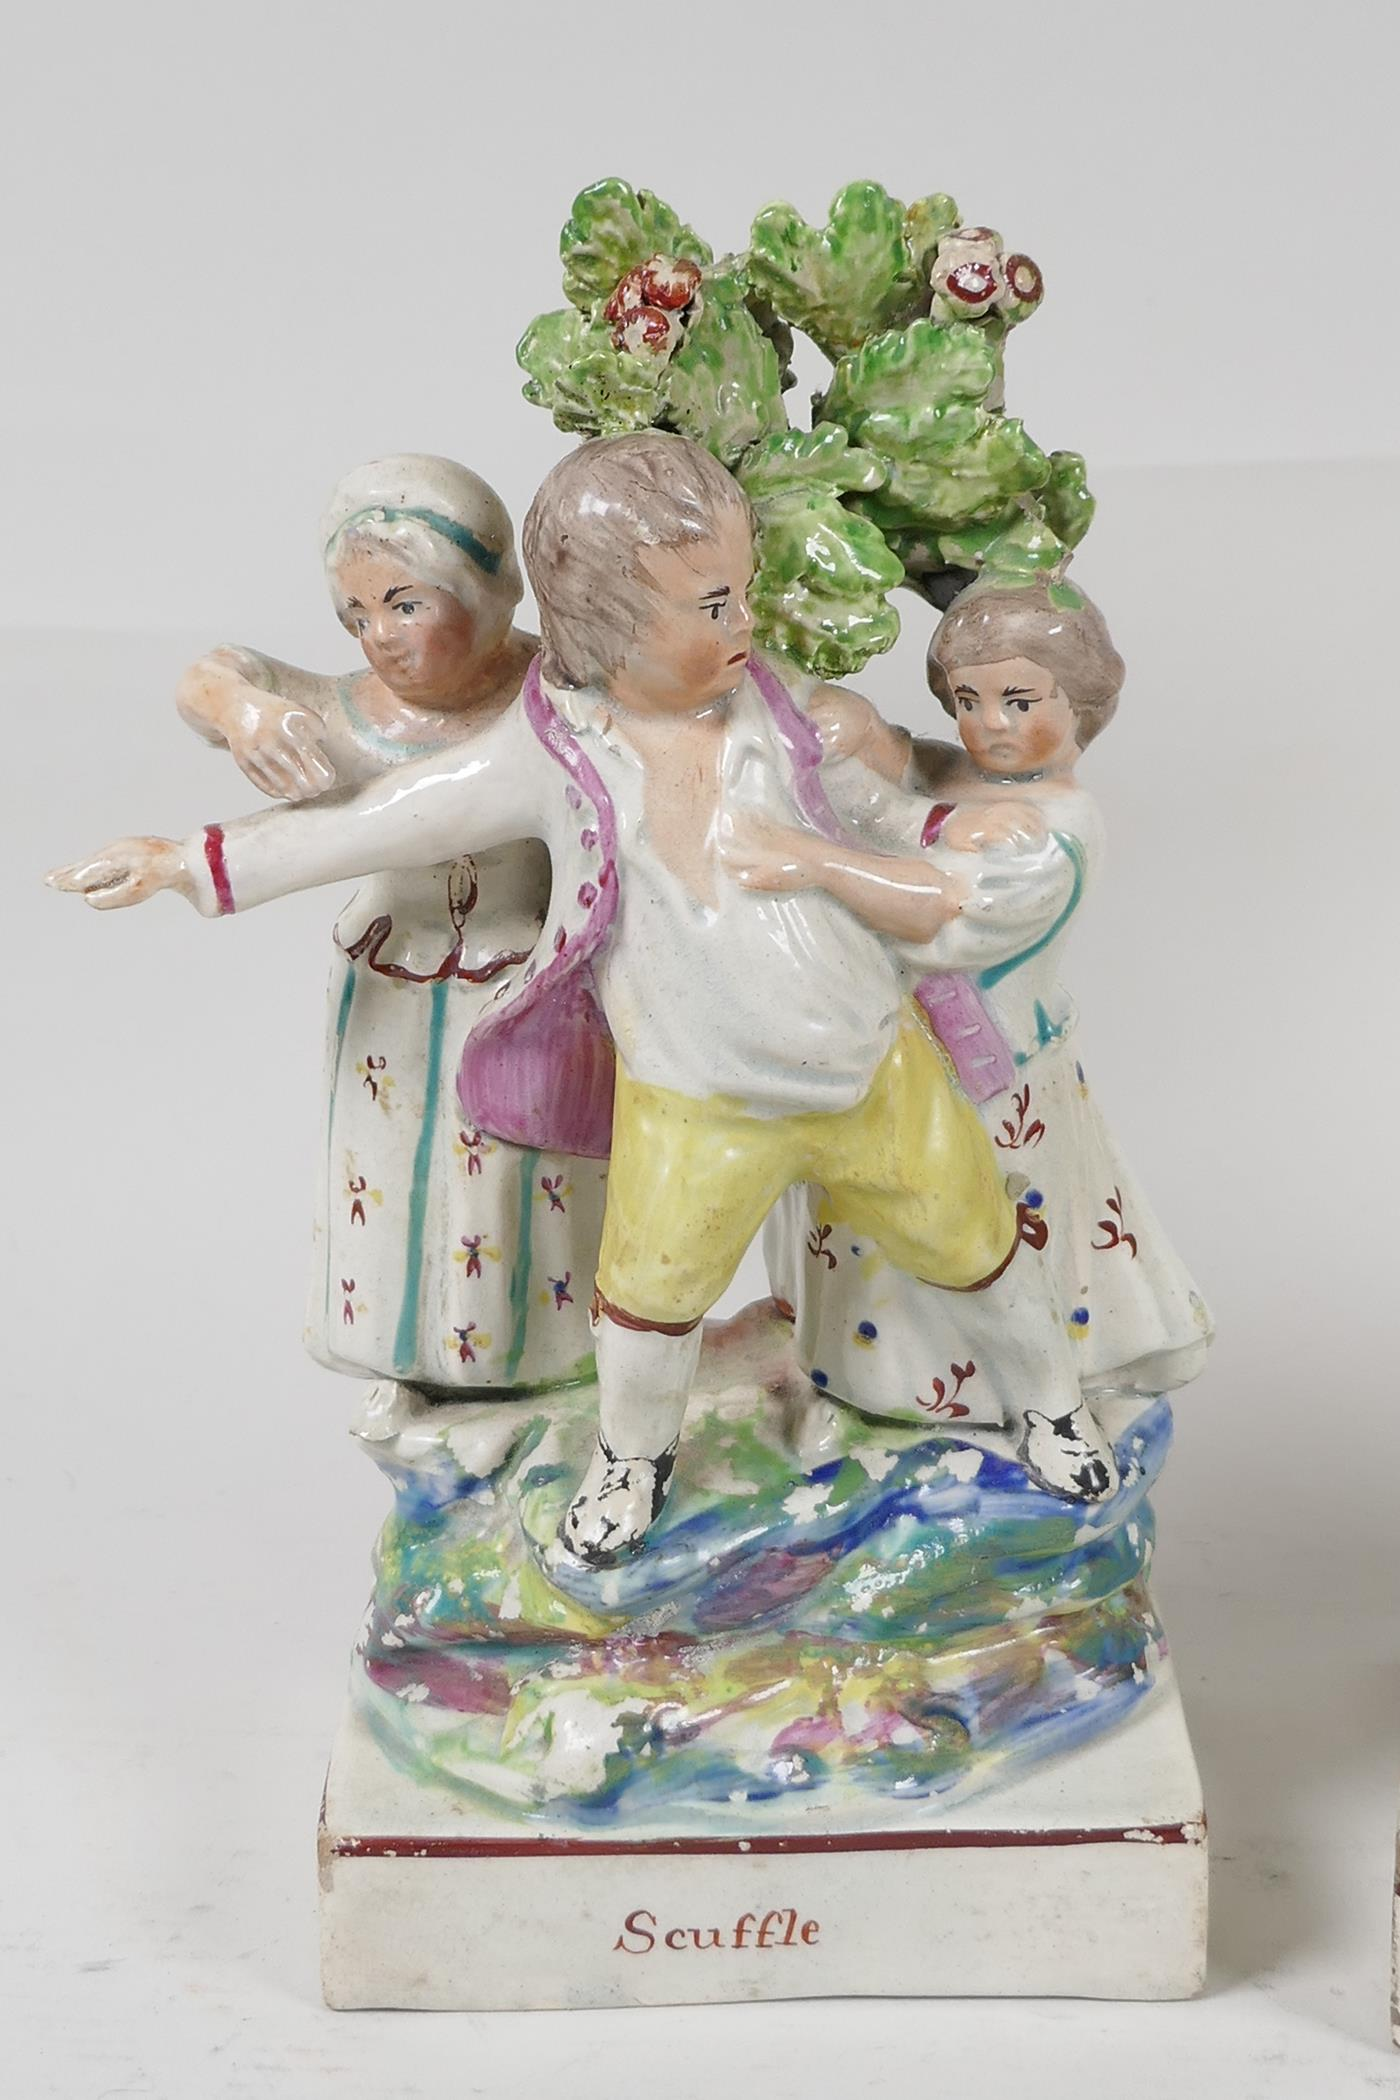 """Two C19th Staffordshire flat back brocage figures 'Rural Pastimes' and 'Scuffle', 7"""" high - Image 2 of 4"""